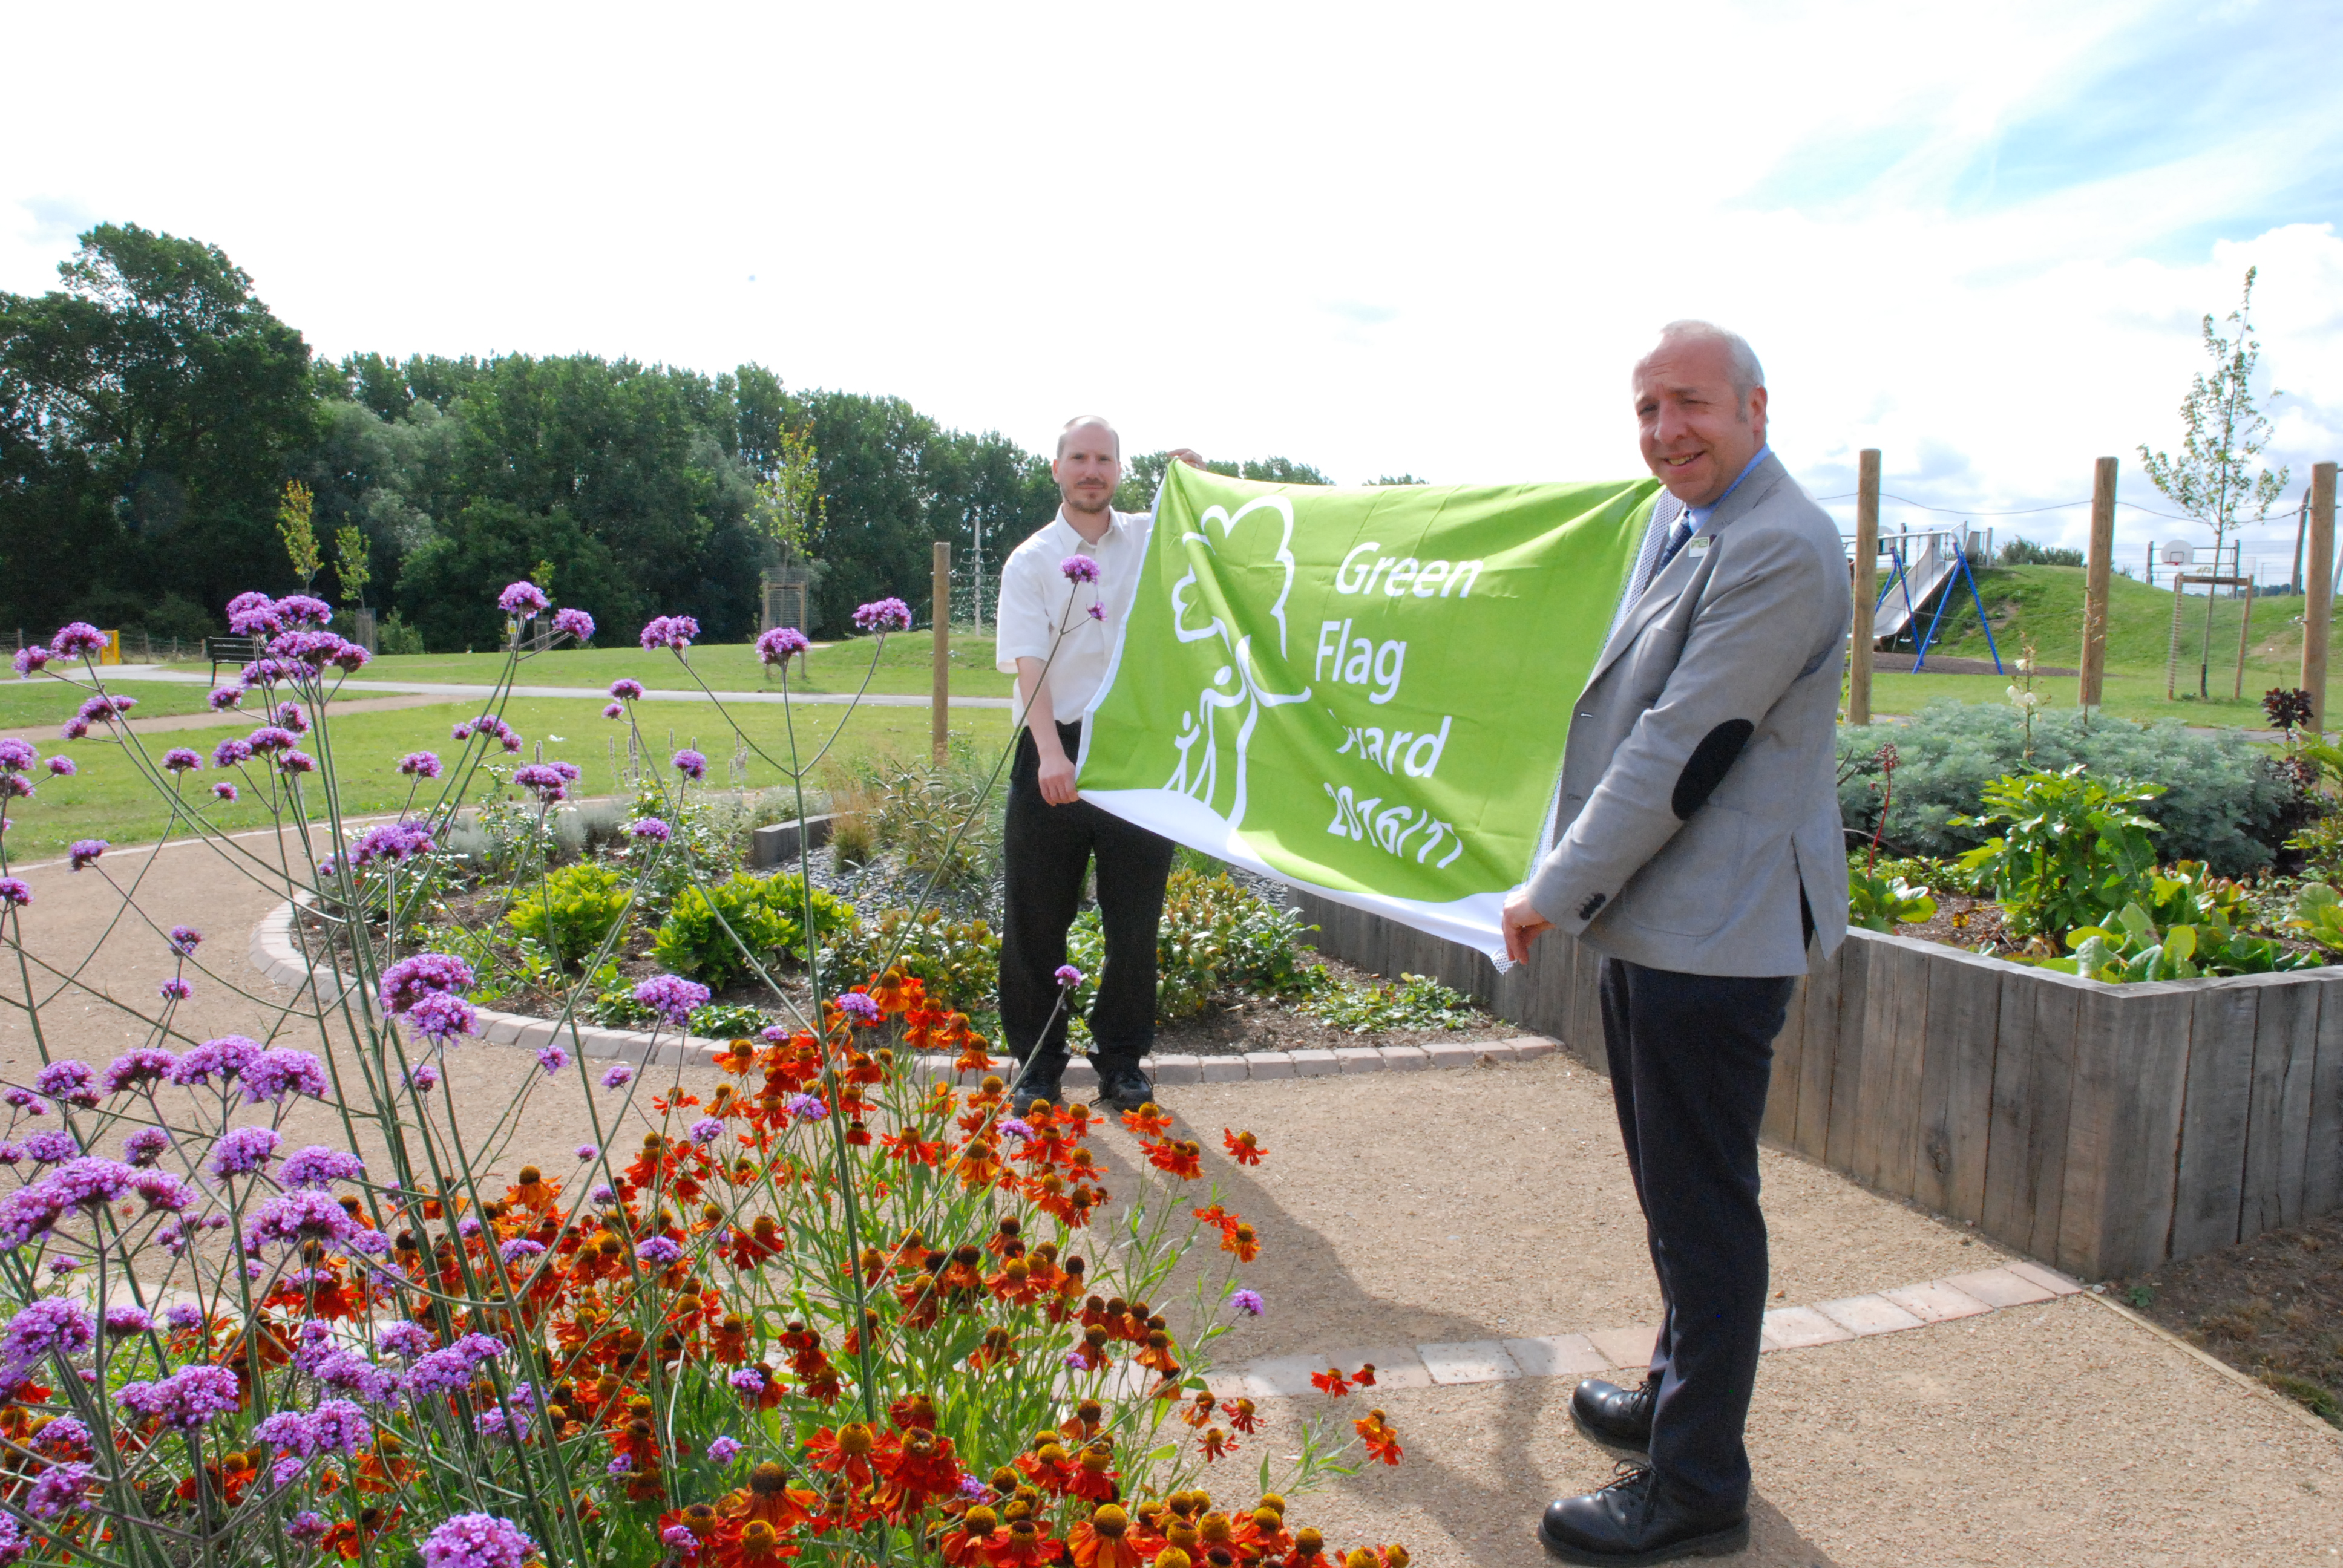 Colin Horton, Green Spaces Officer, and Chris Worman, Parks and Grounds Manager, celebrate a Green Flag Award for Centenary Park, Newbold.